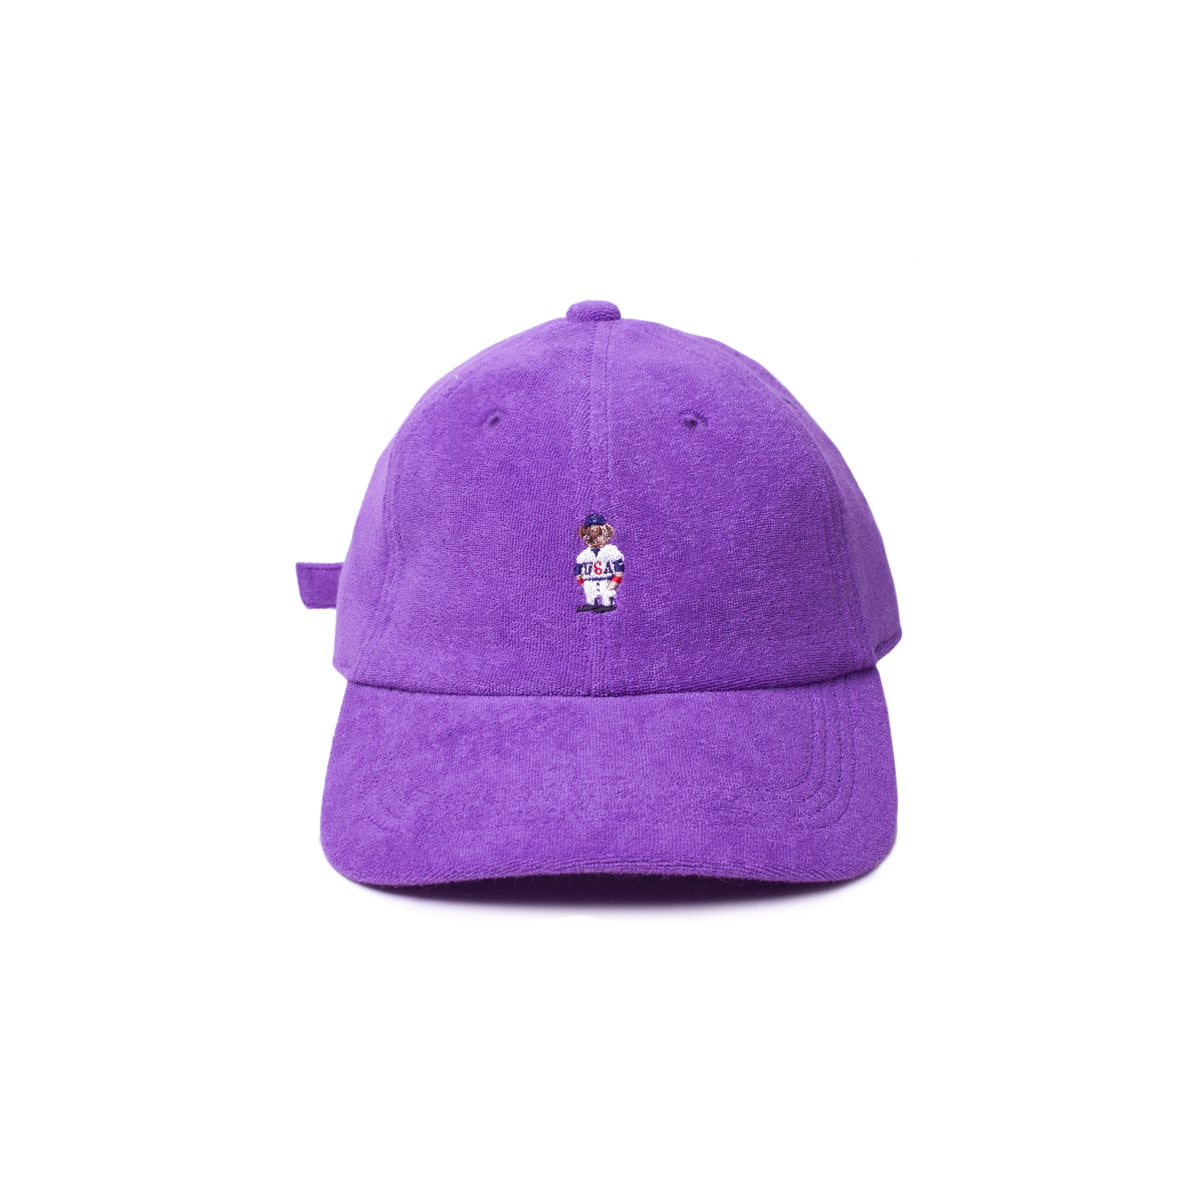 [INFILEDER DESIGN] PILE BEAR CAP 'PURPLE'